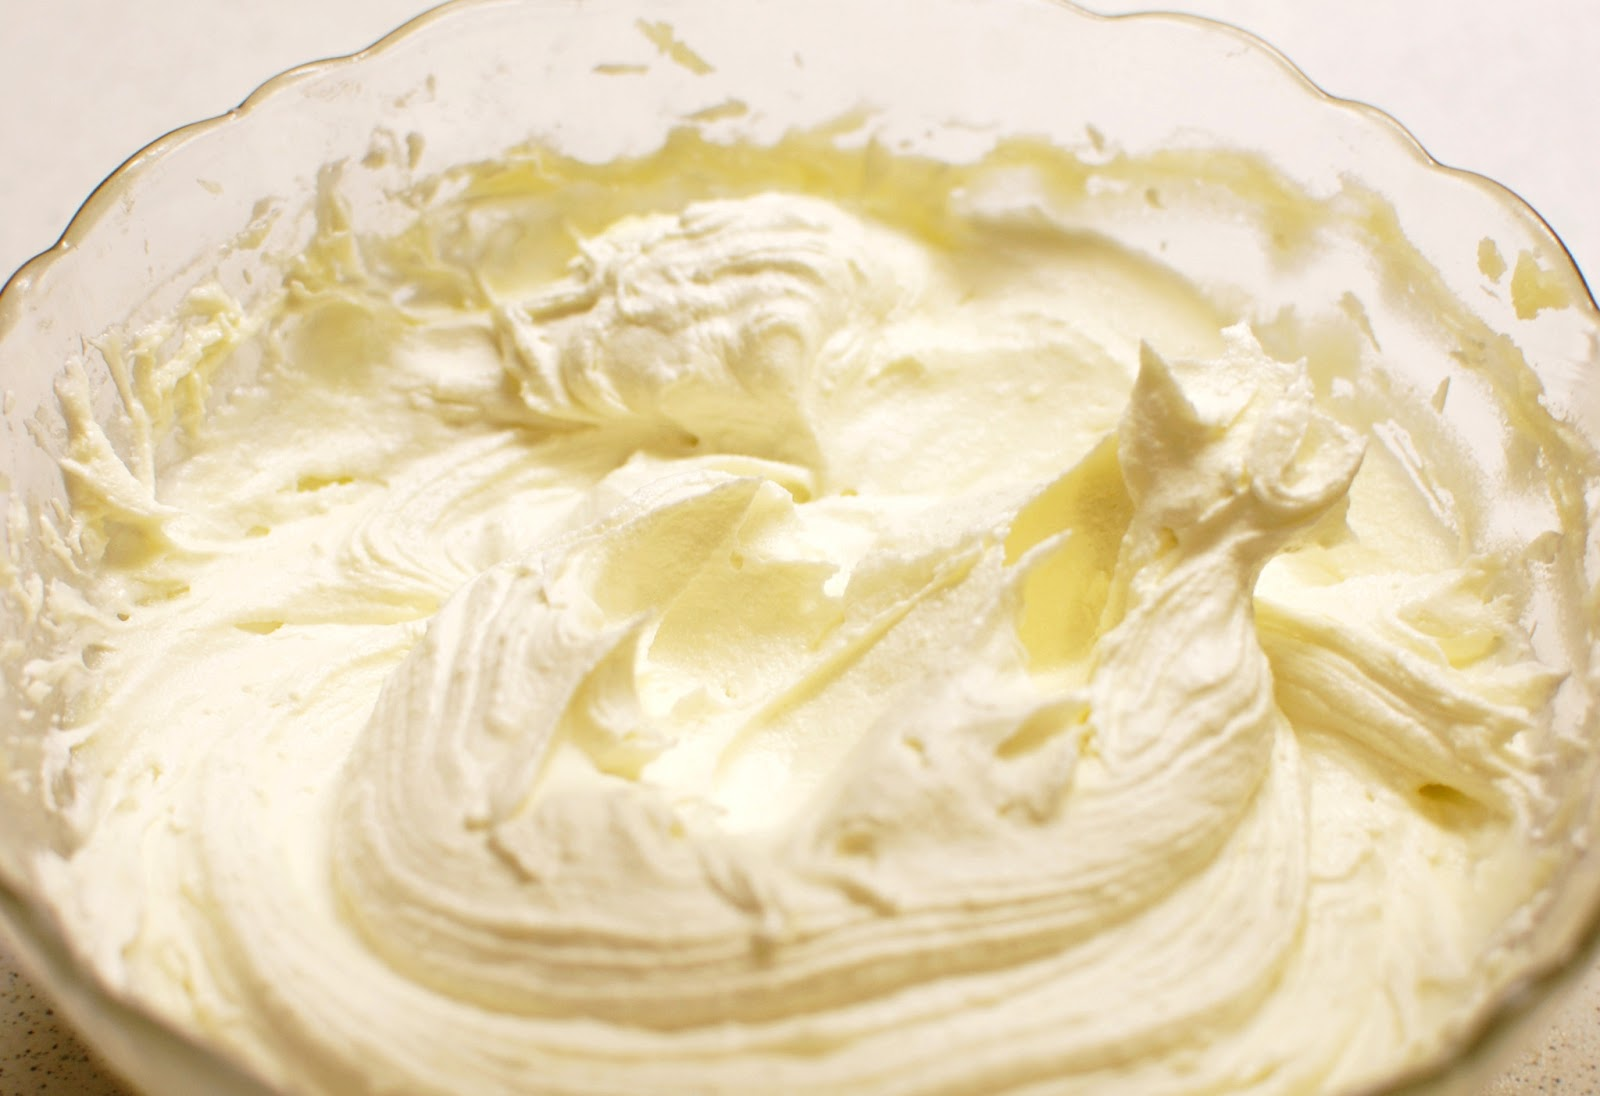 Homemade anti-cellulite body butter